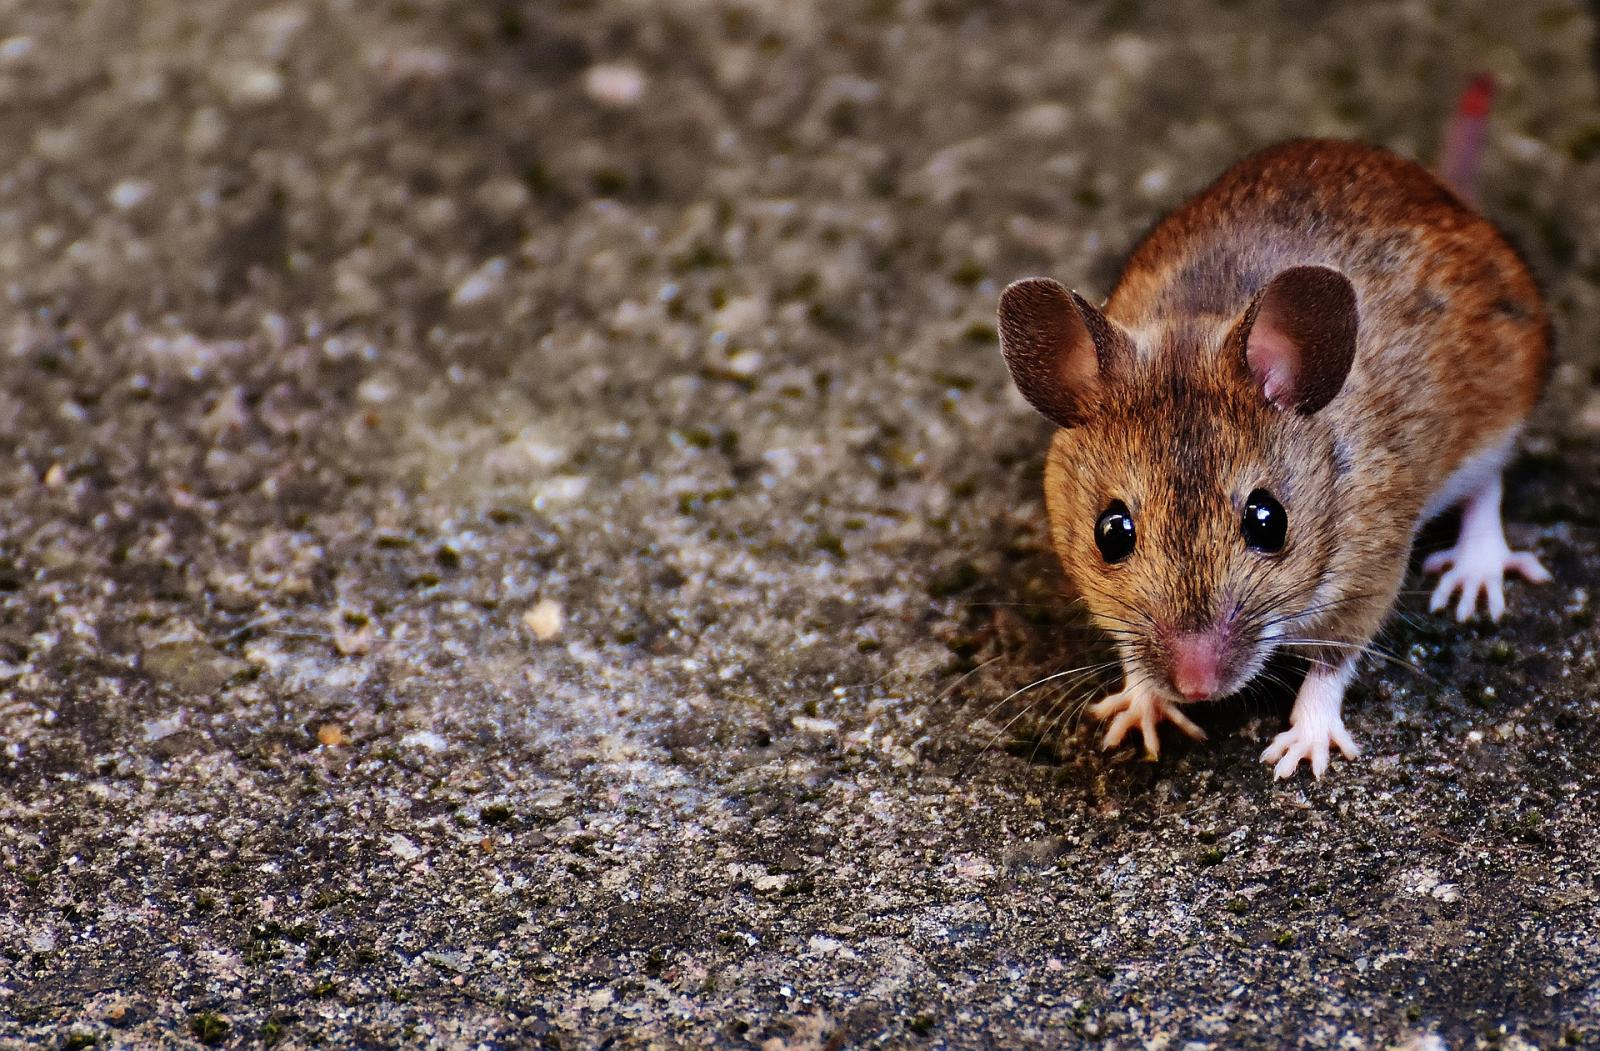 Report Shows Rodents & Poor Sanitation at Farm Tied to Multistate <i>Salmonella</i> Outbreak